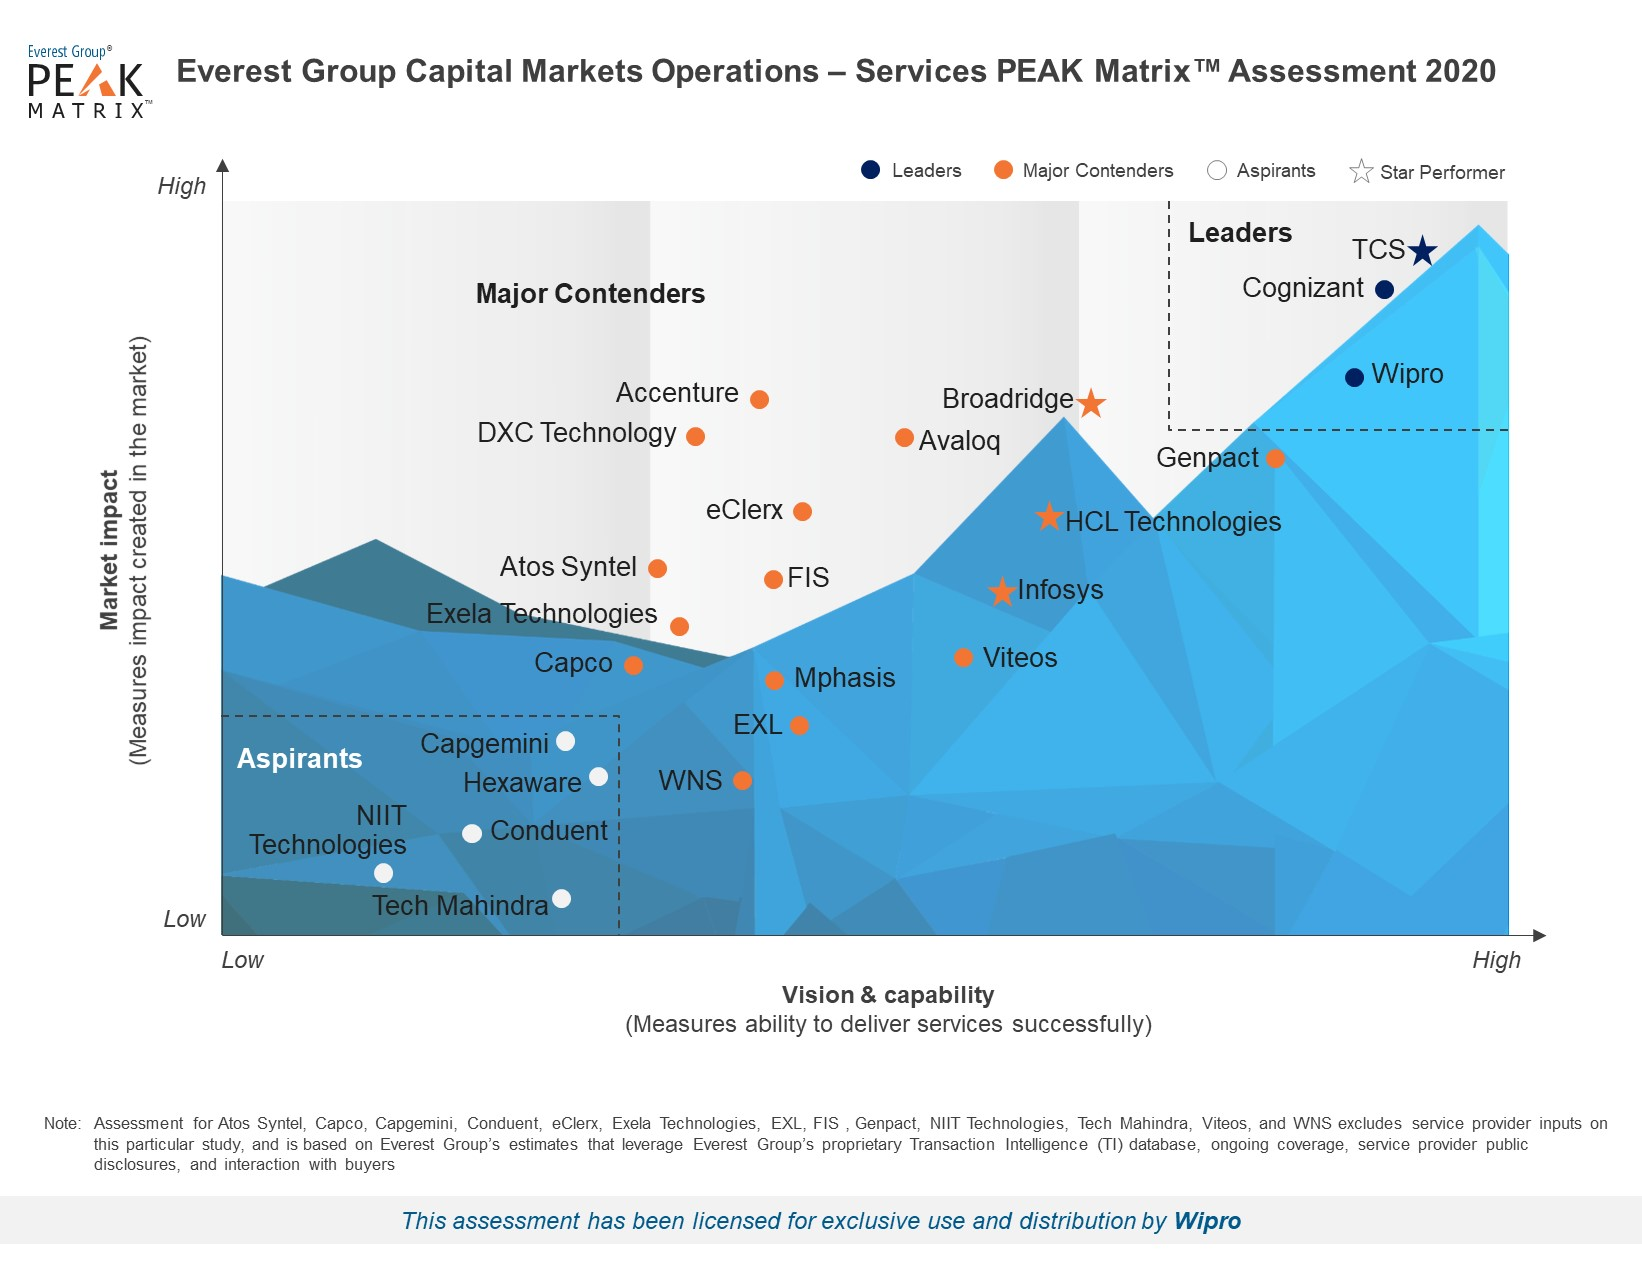 Wipro positioned as a Leader in Capital Markets Operations PEAK MatrixTM 2020